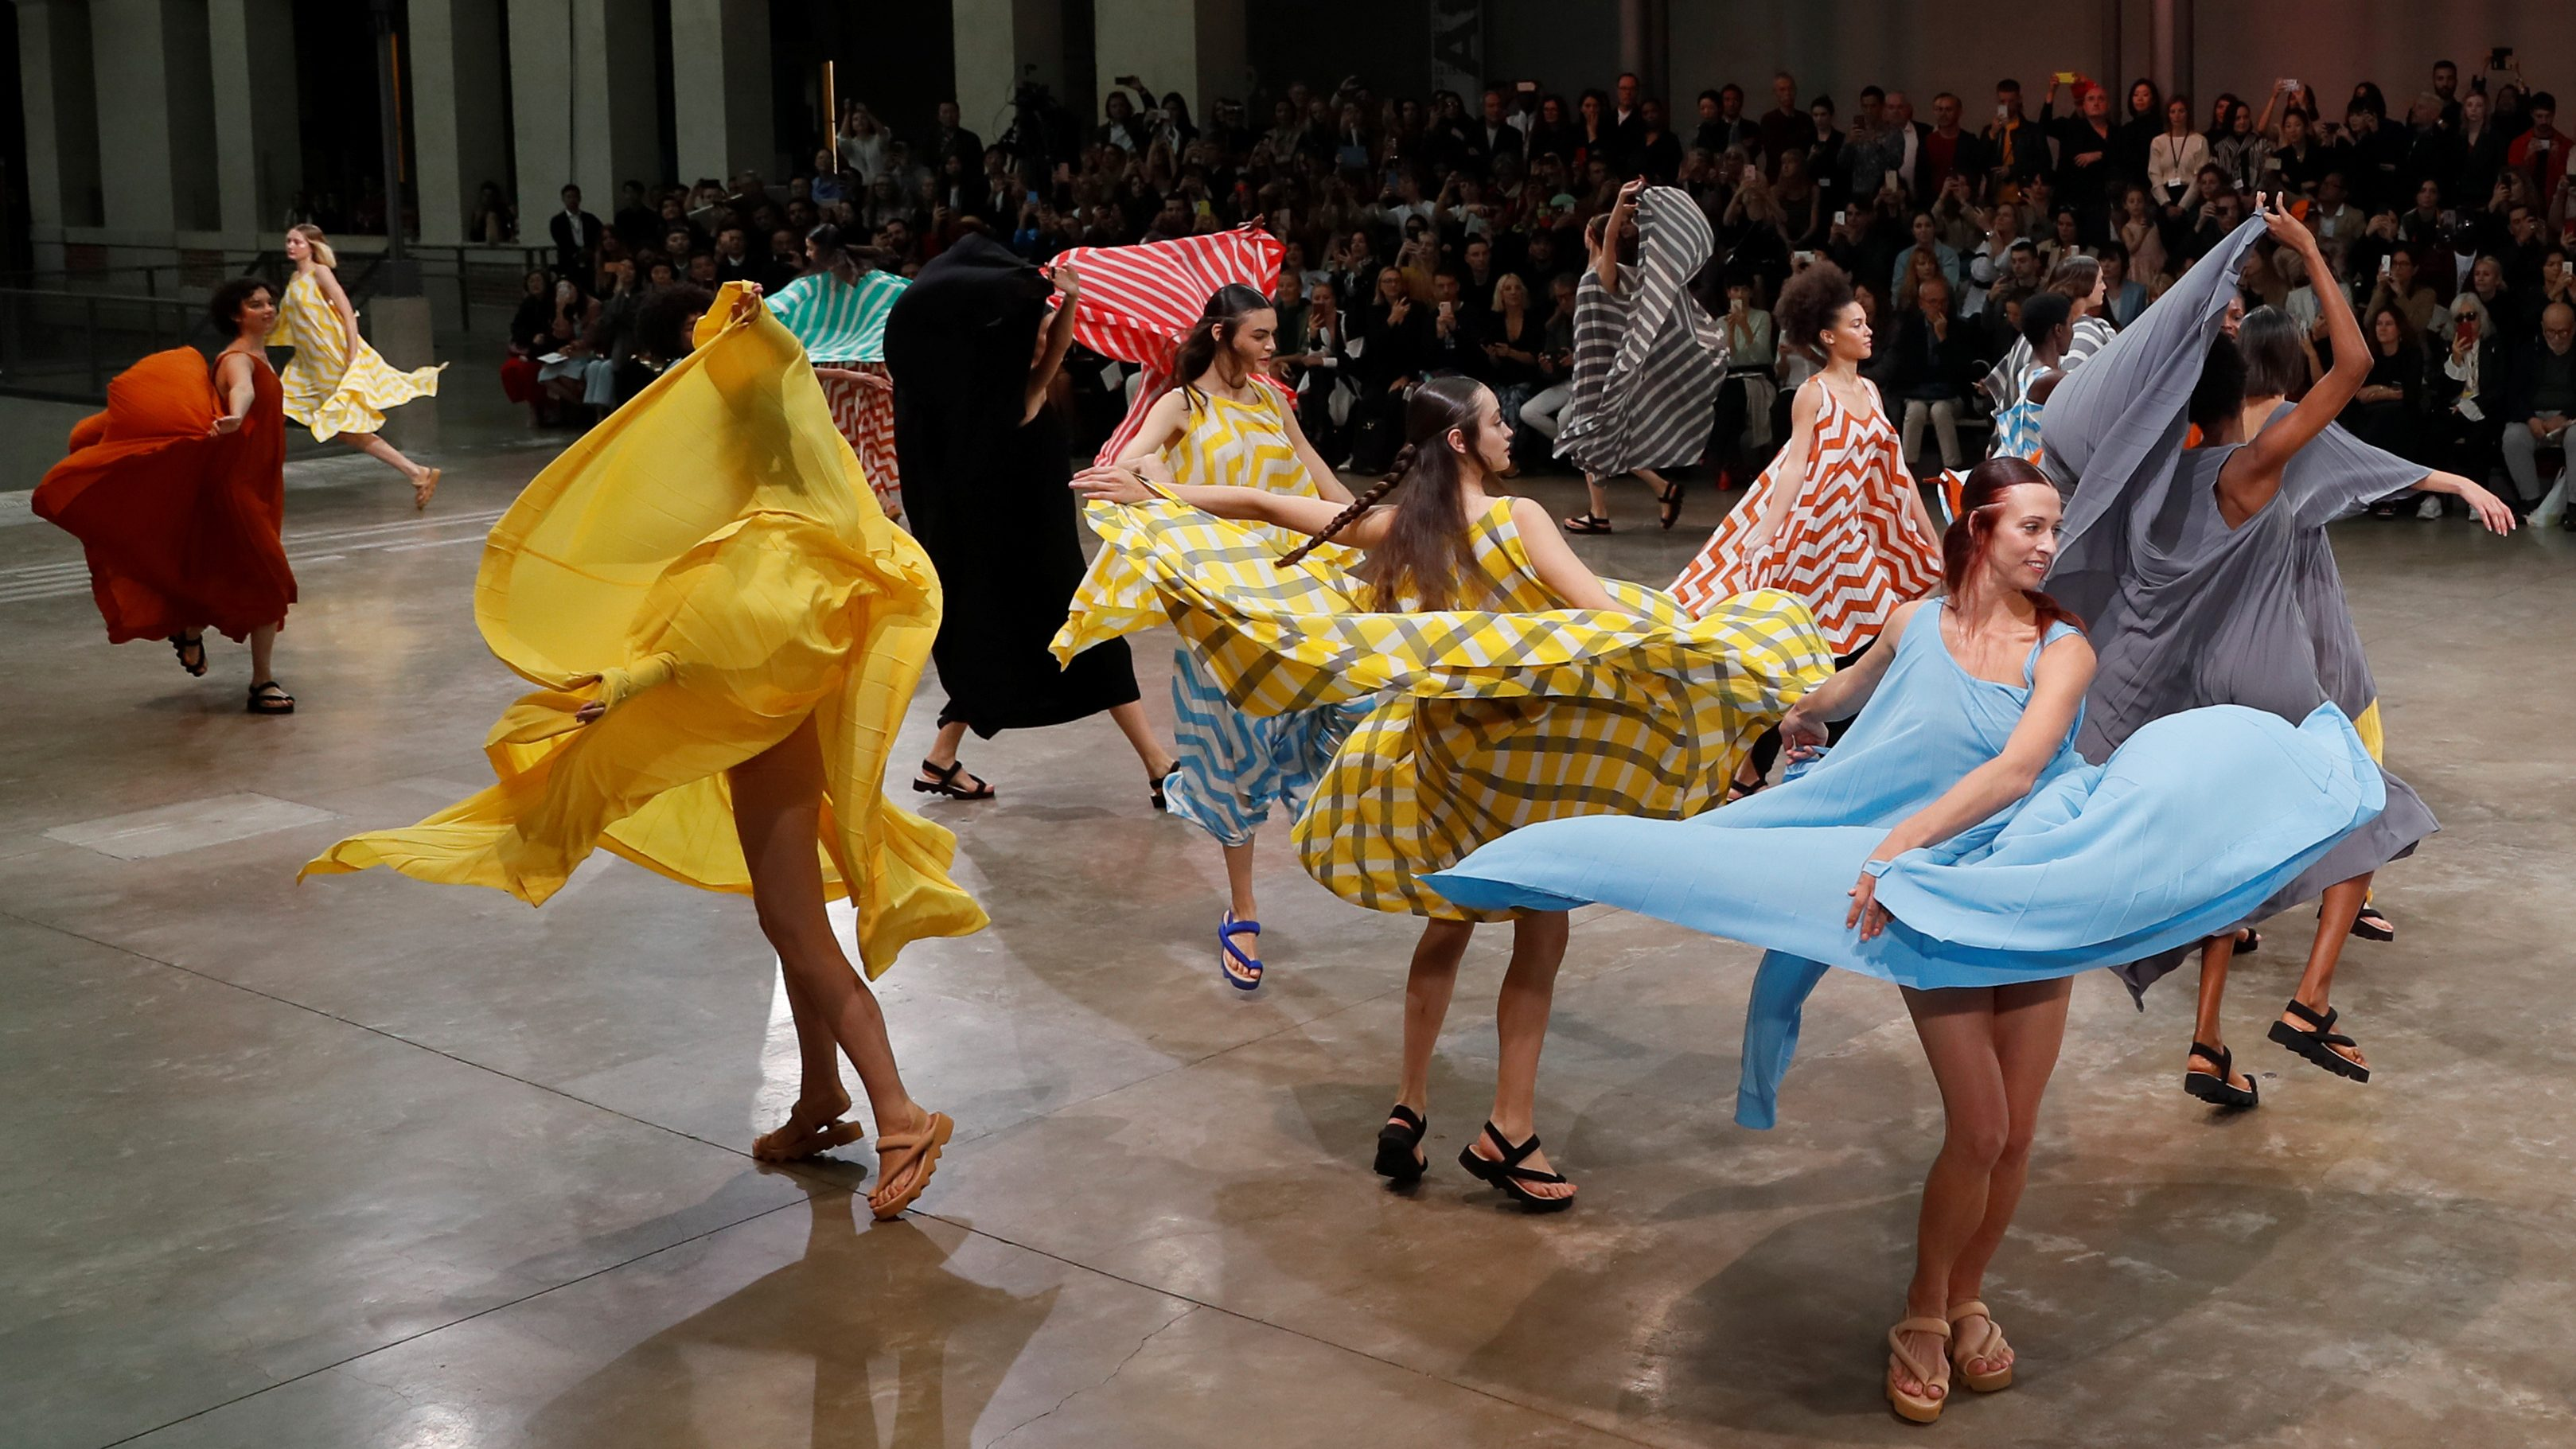 Issey Miyake's spring/summer 2020 collection is an ode to joy